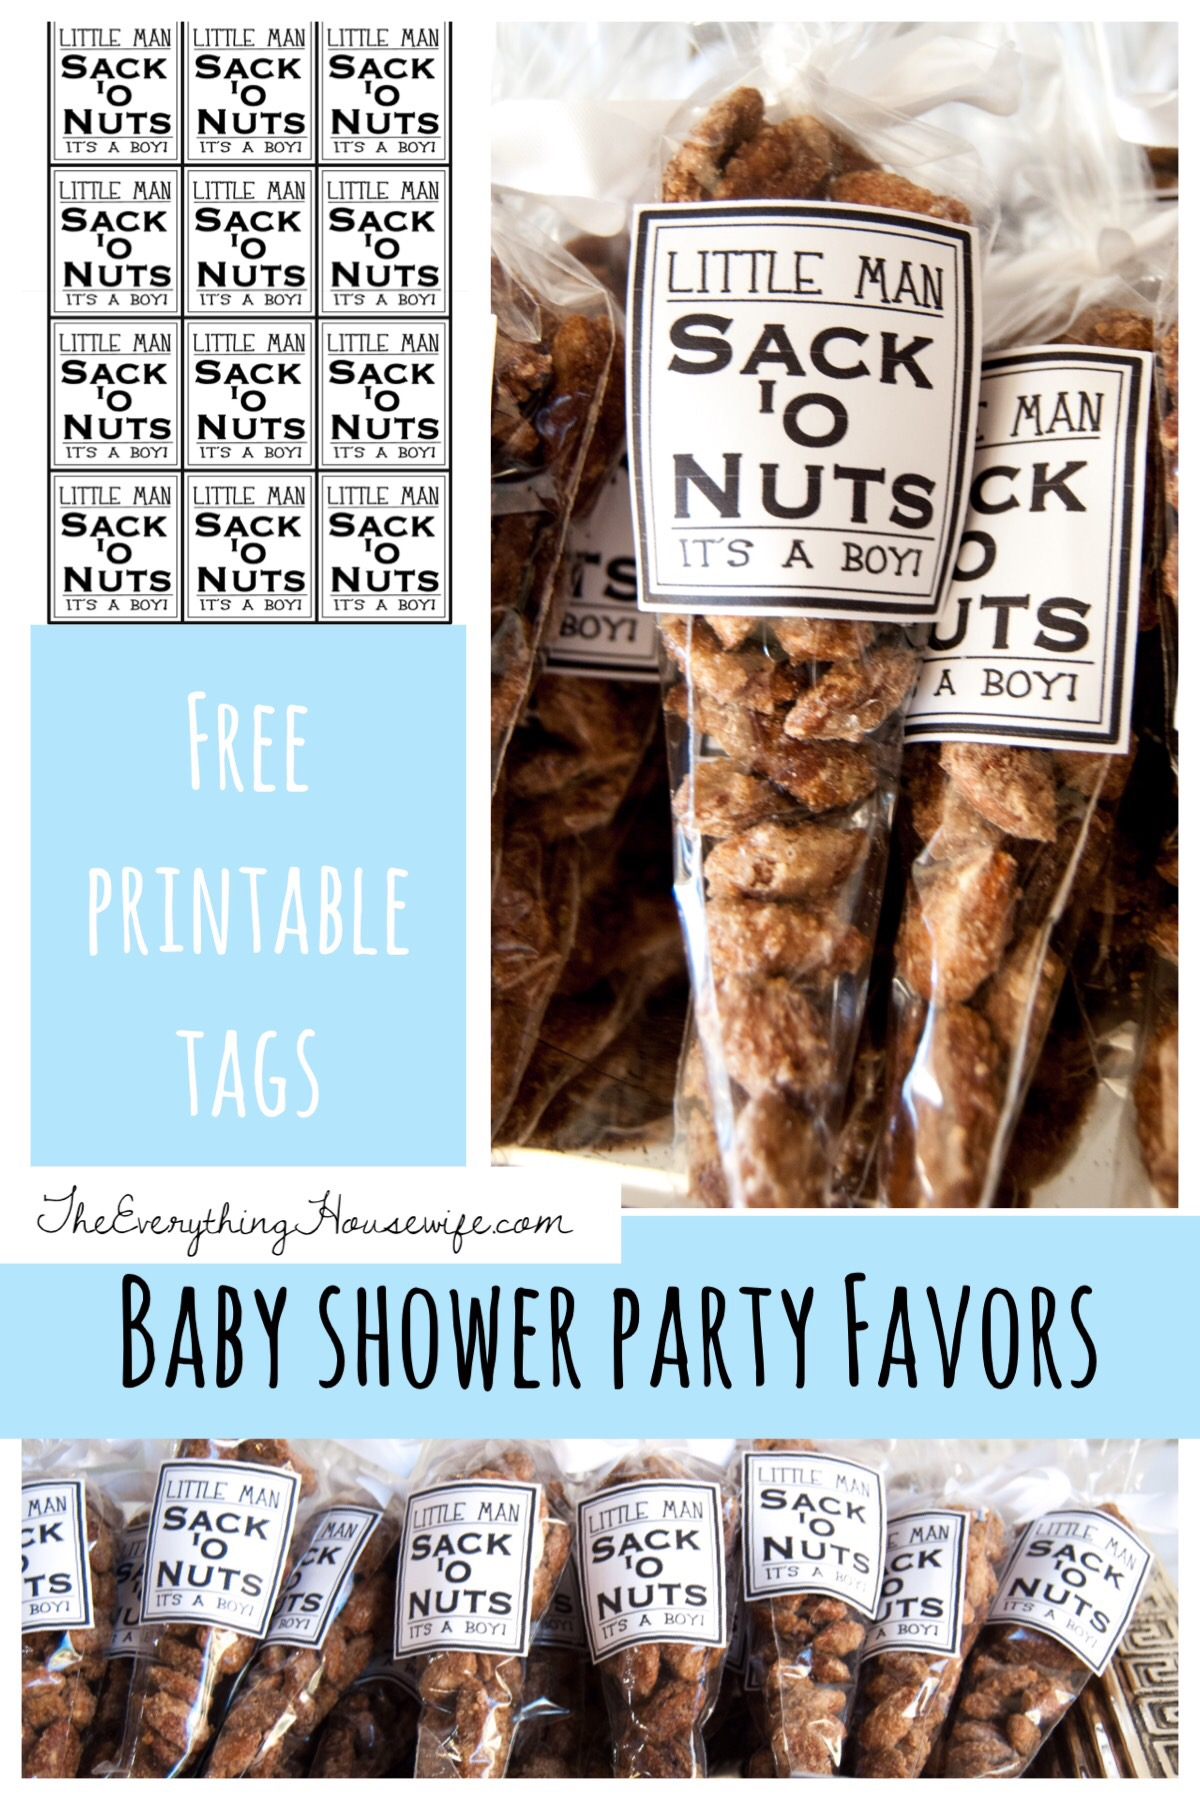 Boy Baby Shower Party Favor The Everything Housewife